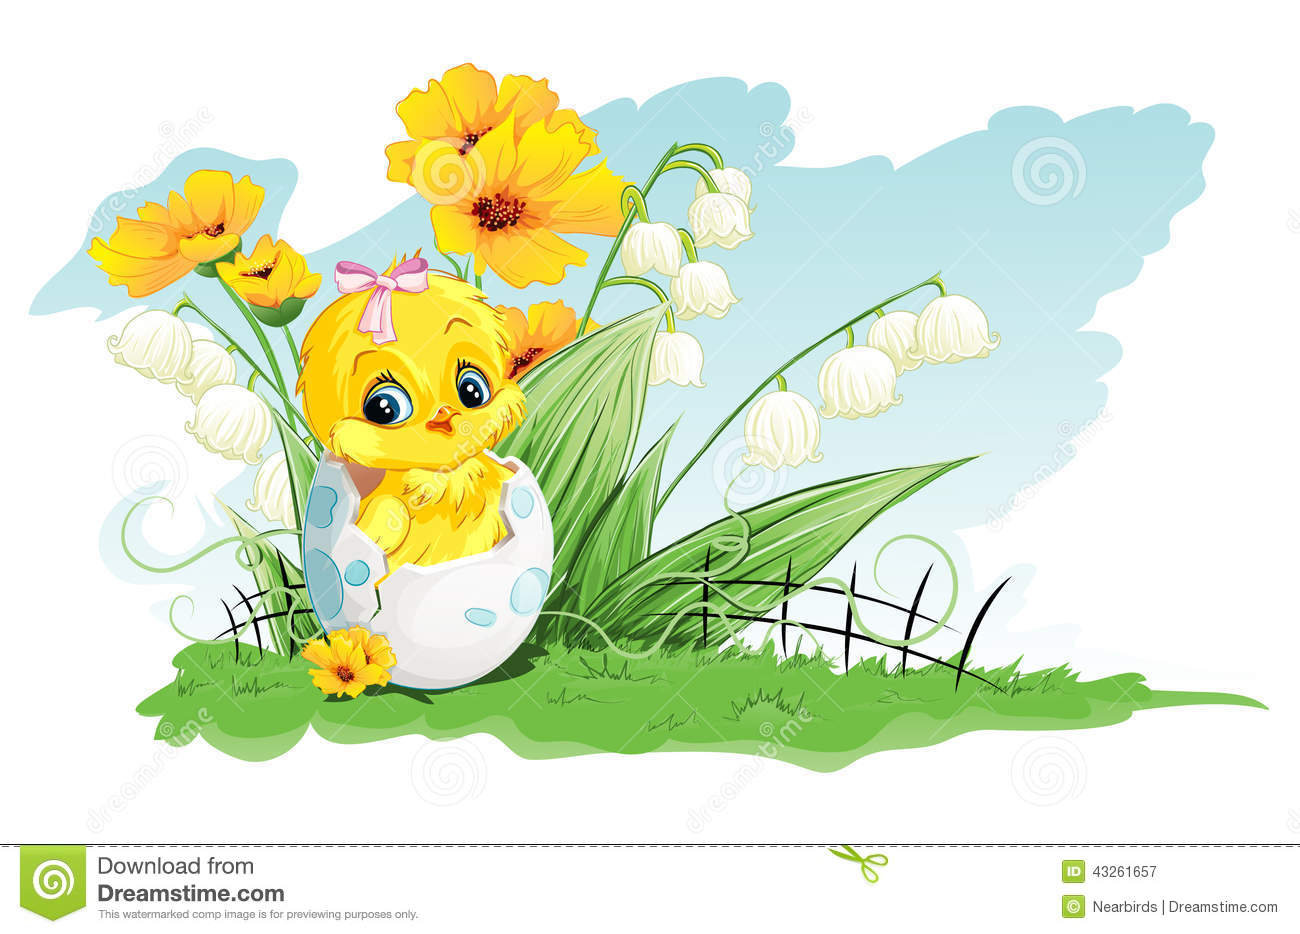 Illustration of chicken in the egg and lilies of the valley on a background of yellow flowers